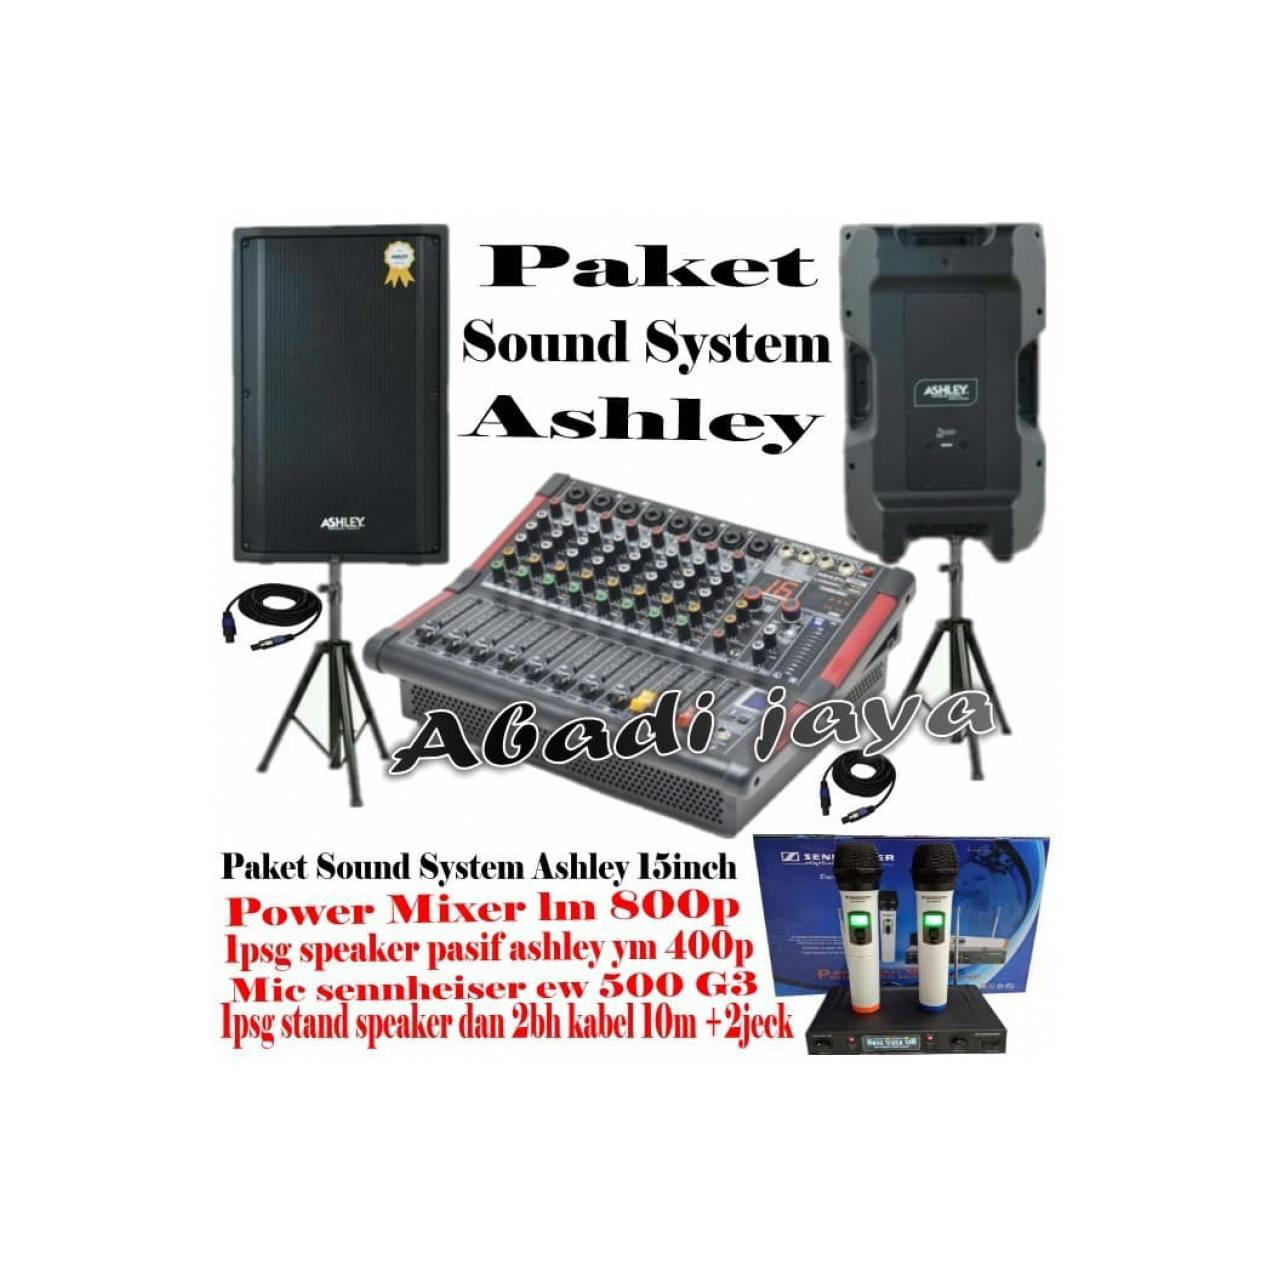 Murah Sound System Power Mixer Lm 800p Dan Ashley Ym 400p Sound System